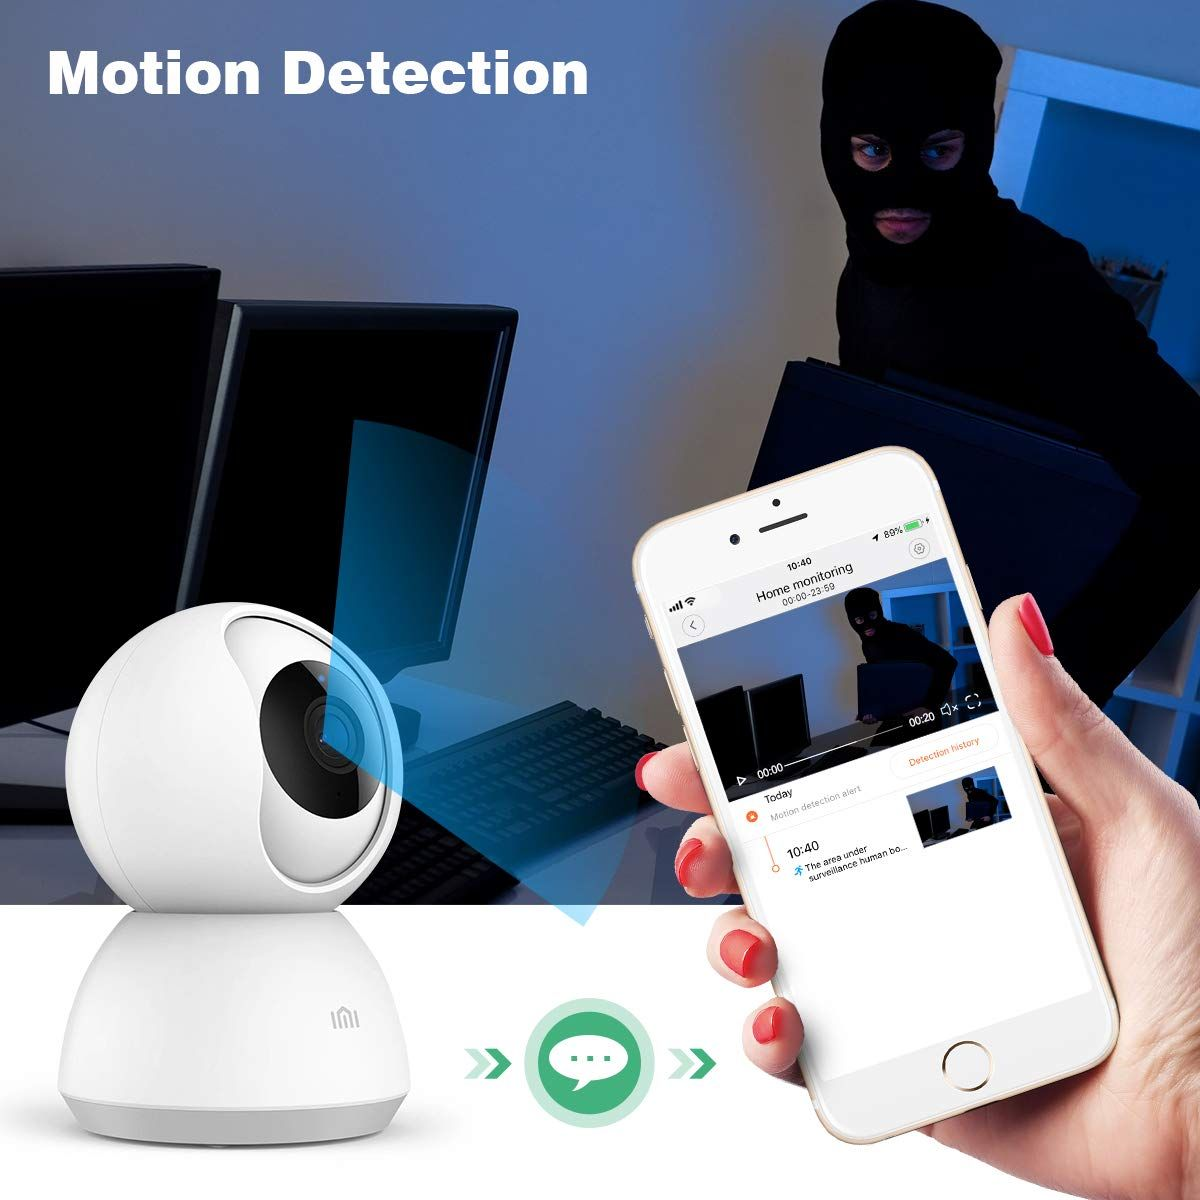 Imi 1080p Wireless Home Security Camera See This Great Product It Is An Affiliate In 2020 Wireless Home Security Cameras Security Cameras For Home Security Camera